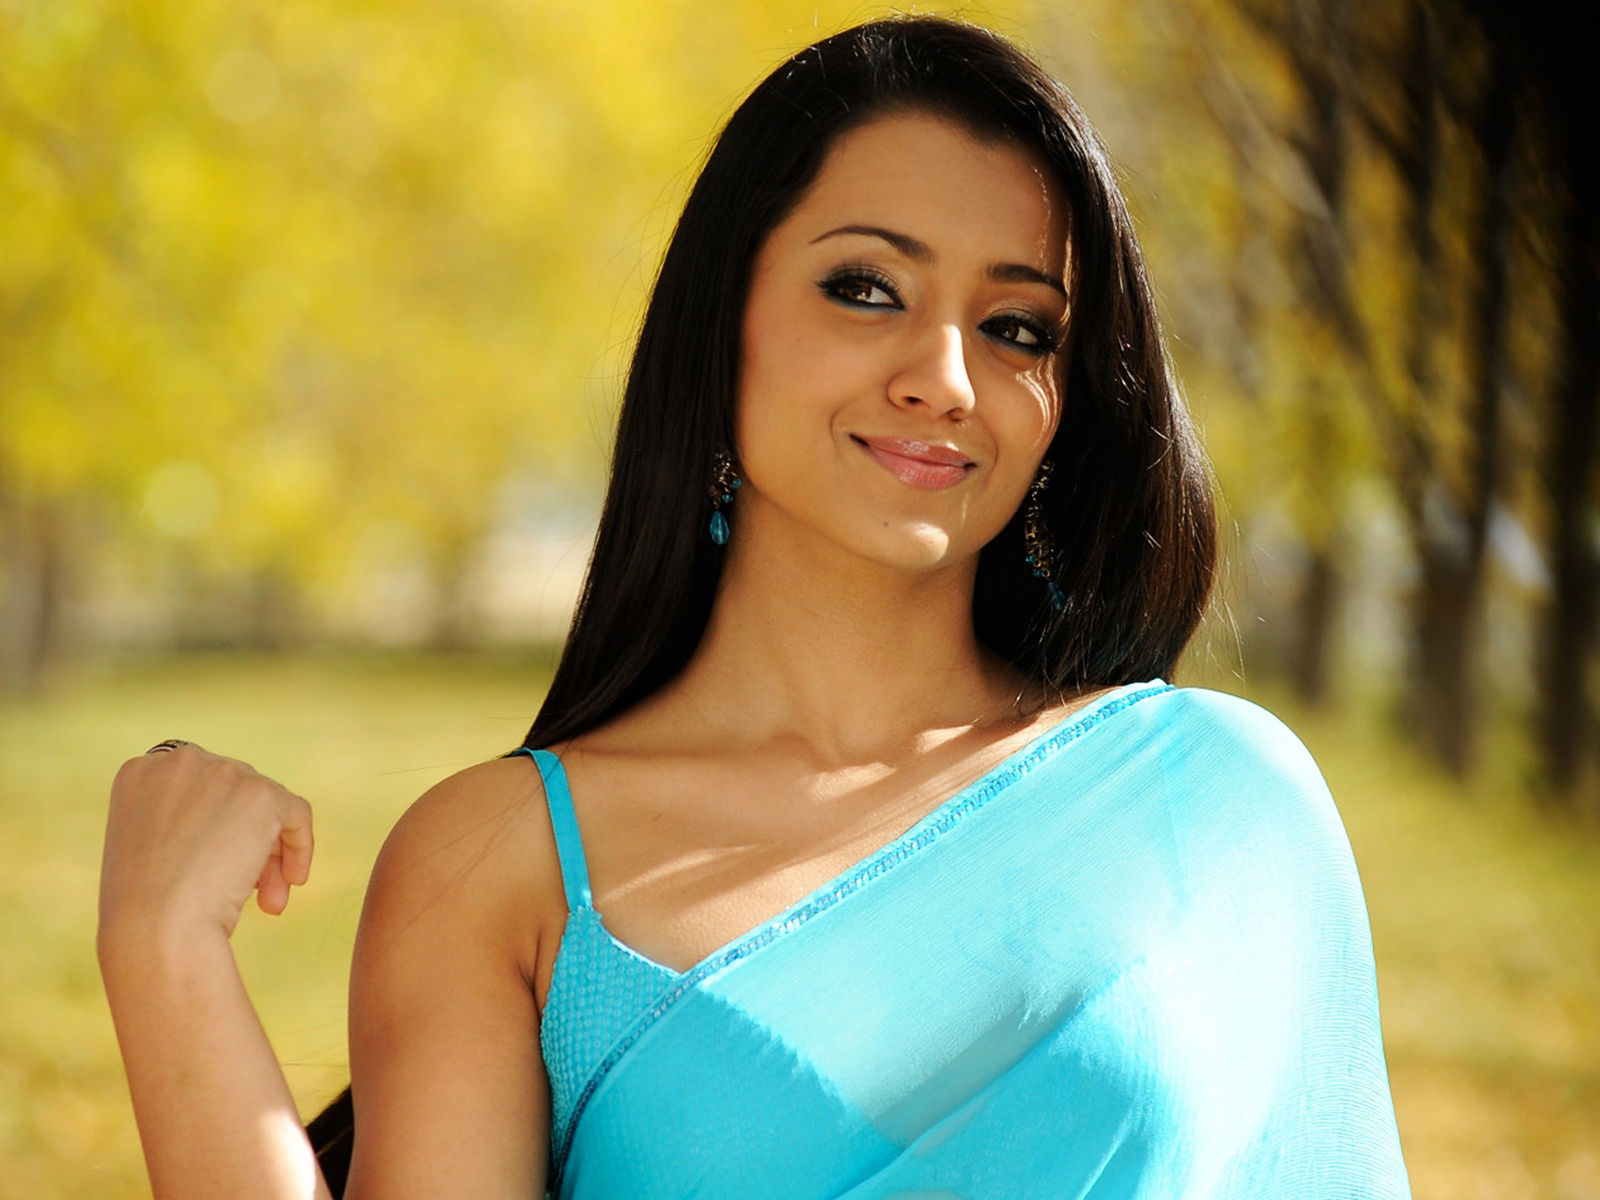 Trisha in Bodyguard 543.93 Kb